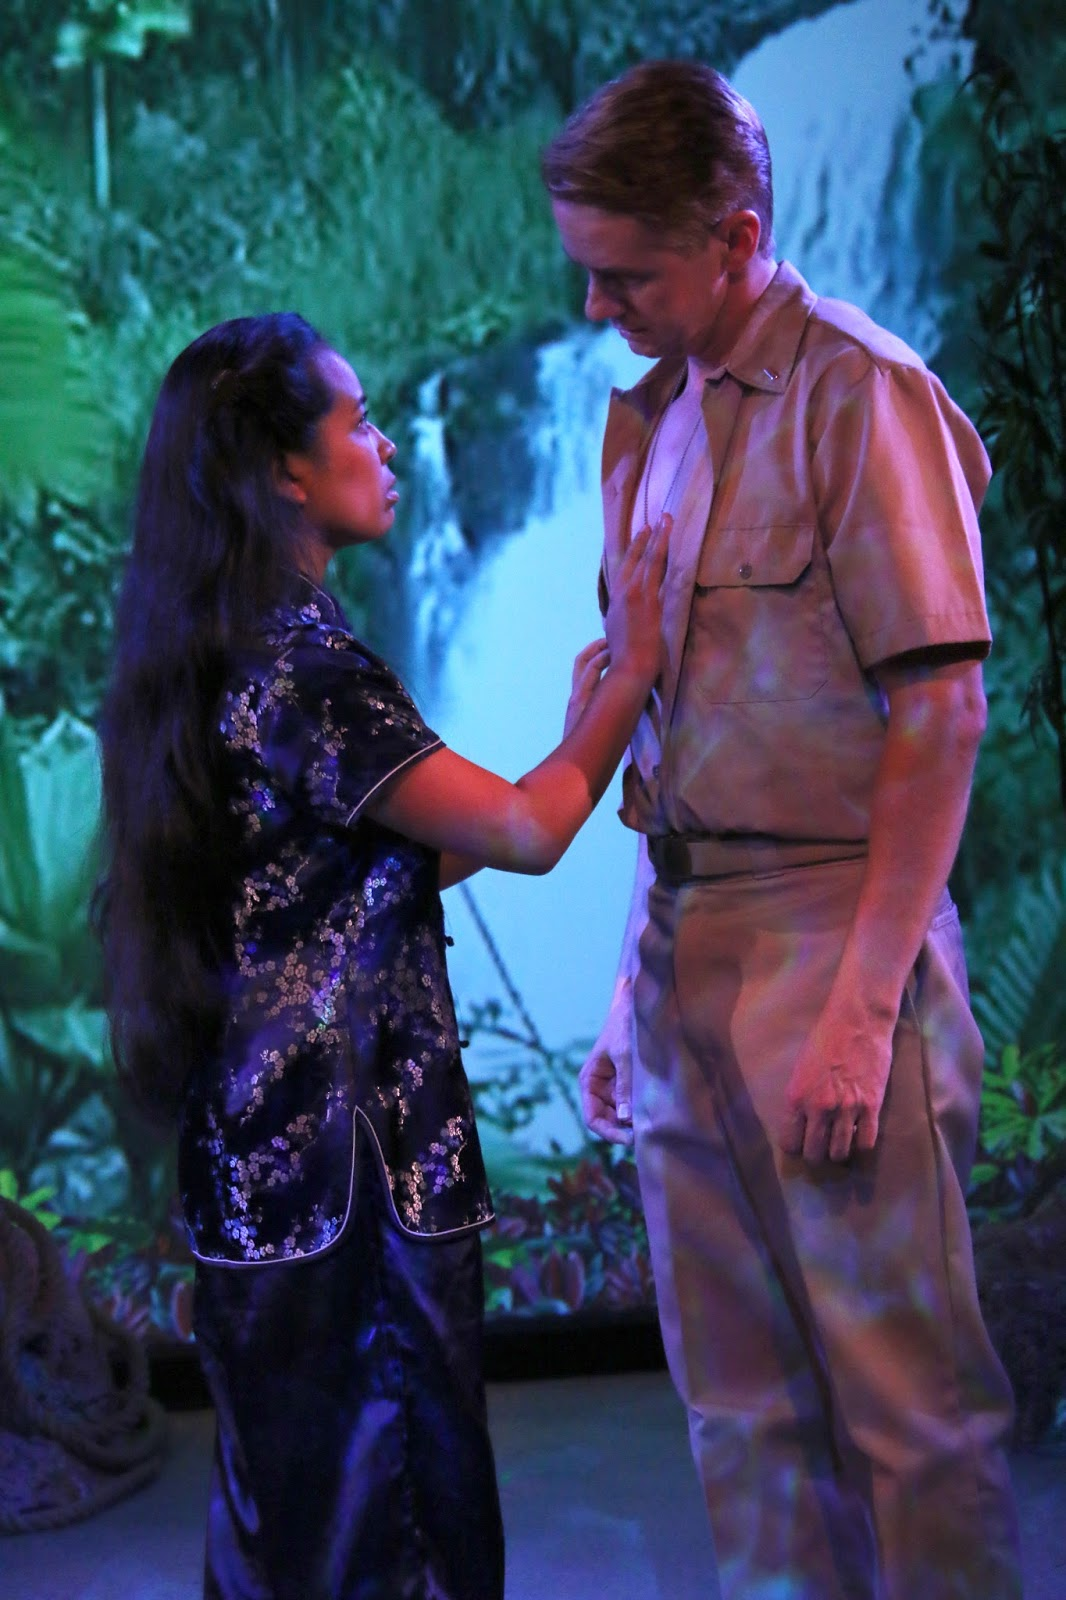 Fountain Hills Theatre. 2015. South Pacific. Chelsea Umeda as Liat and Chris Fidler as Lt. Cable. (Photo courtesy of the theater)